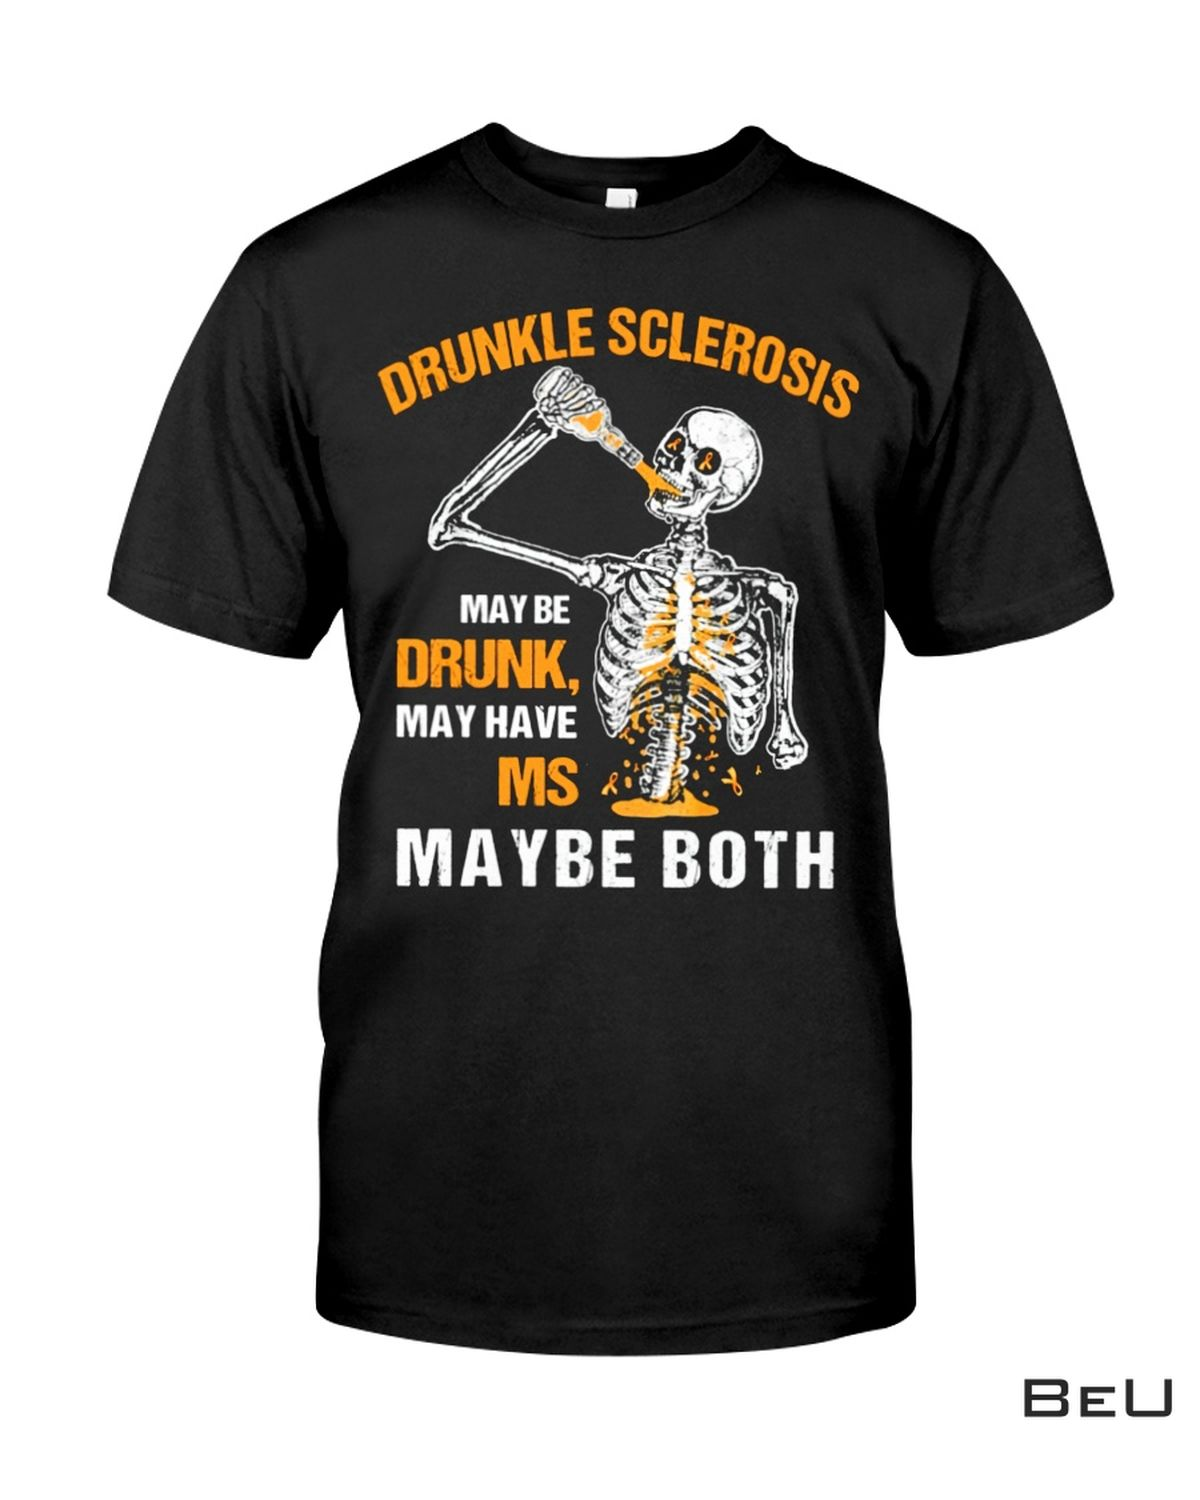 Great artwork! Drunkle Sclerosis May Be Drunk May Have Ms Shirt, hoodie, tank top